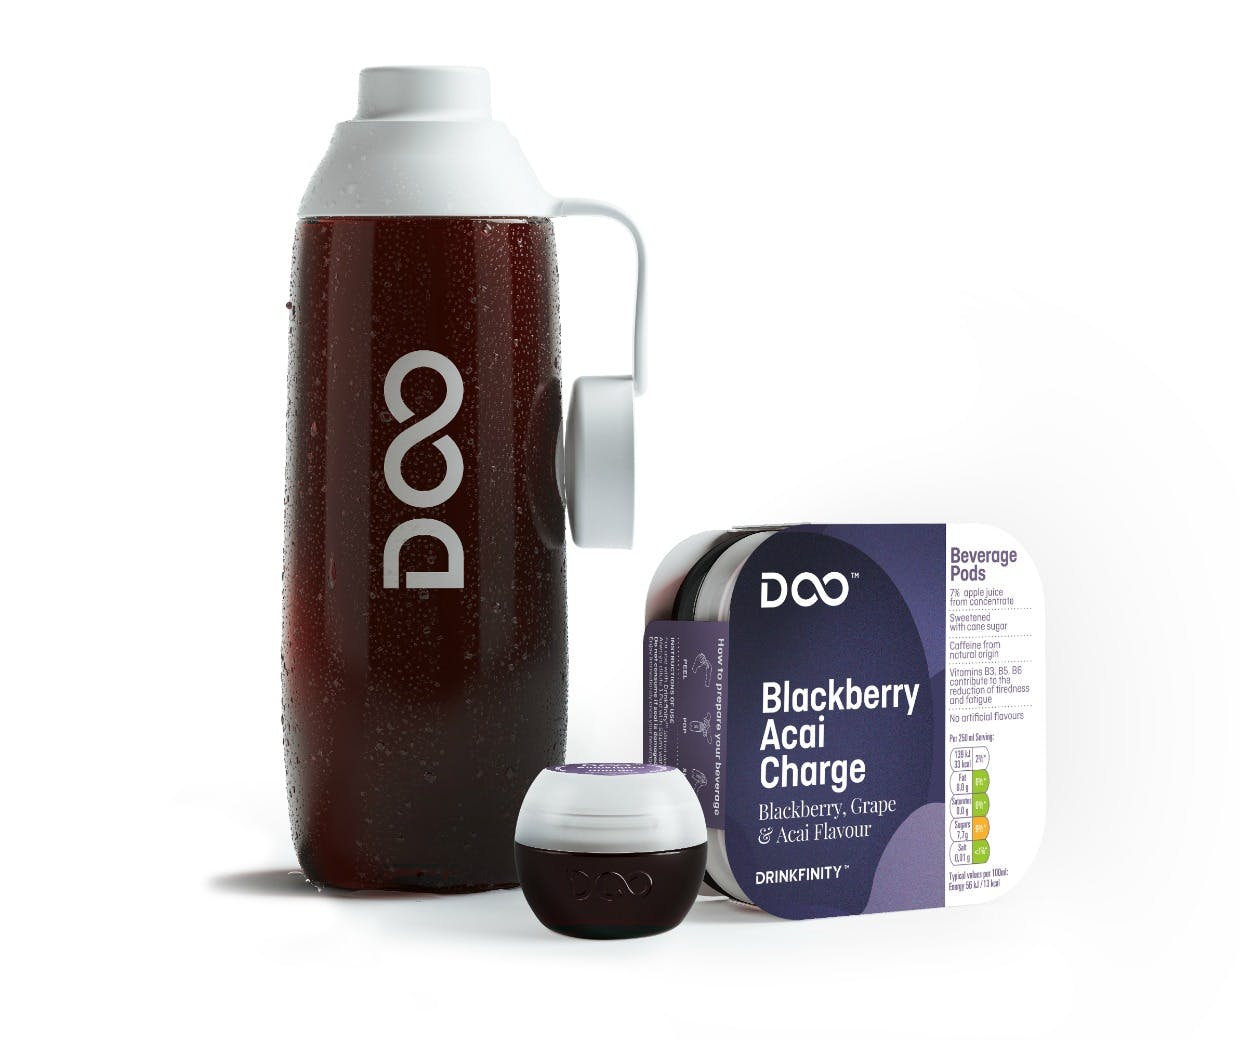 PepsiCo on the launch of its first ecommerce-only brand Drinkfinity